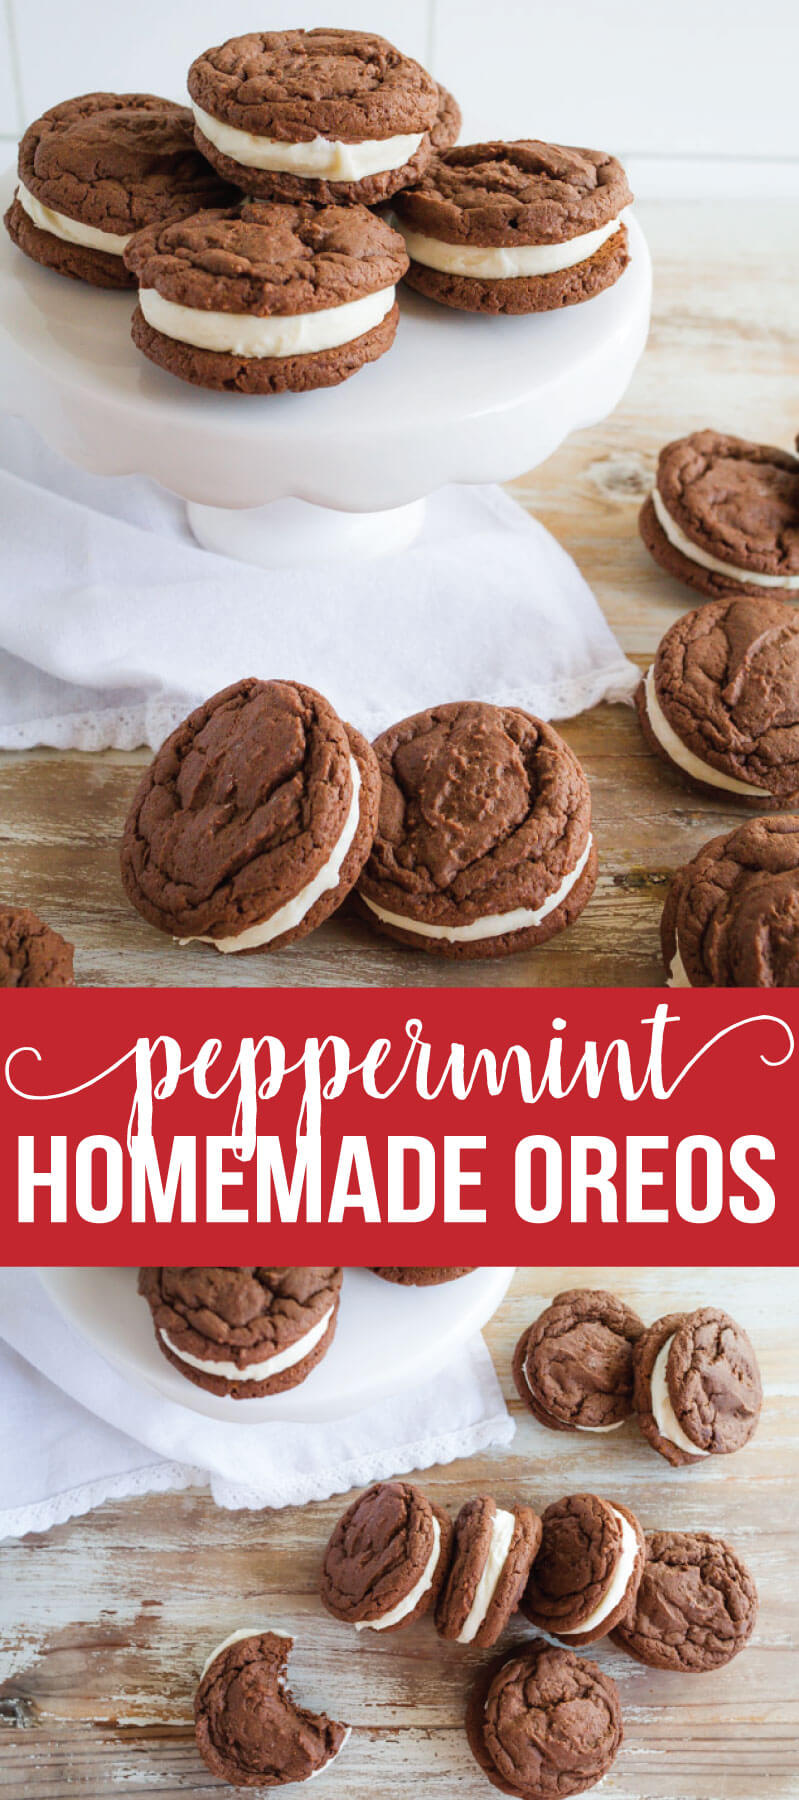 Peppermint Homemade Oreos - the perfect holiday treat recipe from www.thirtyhandmadedays.com